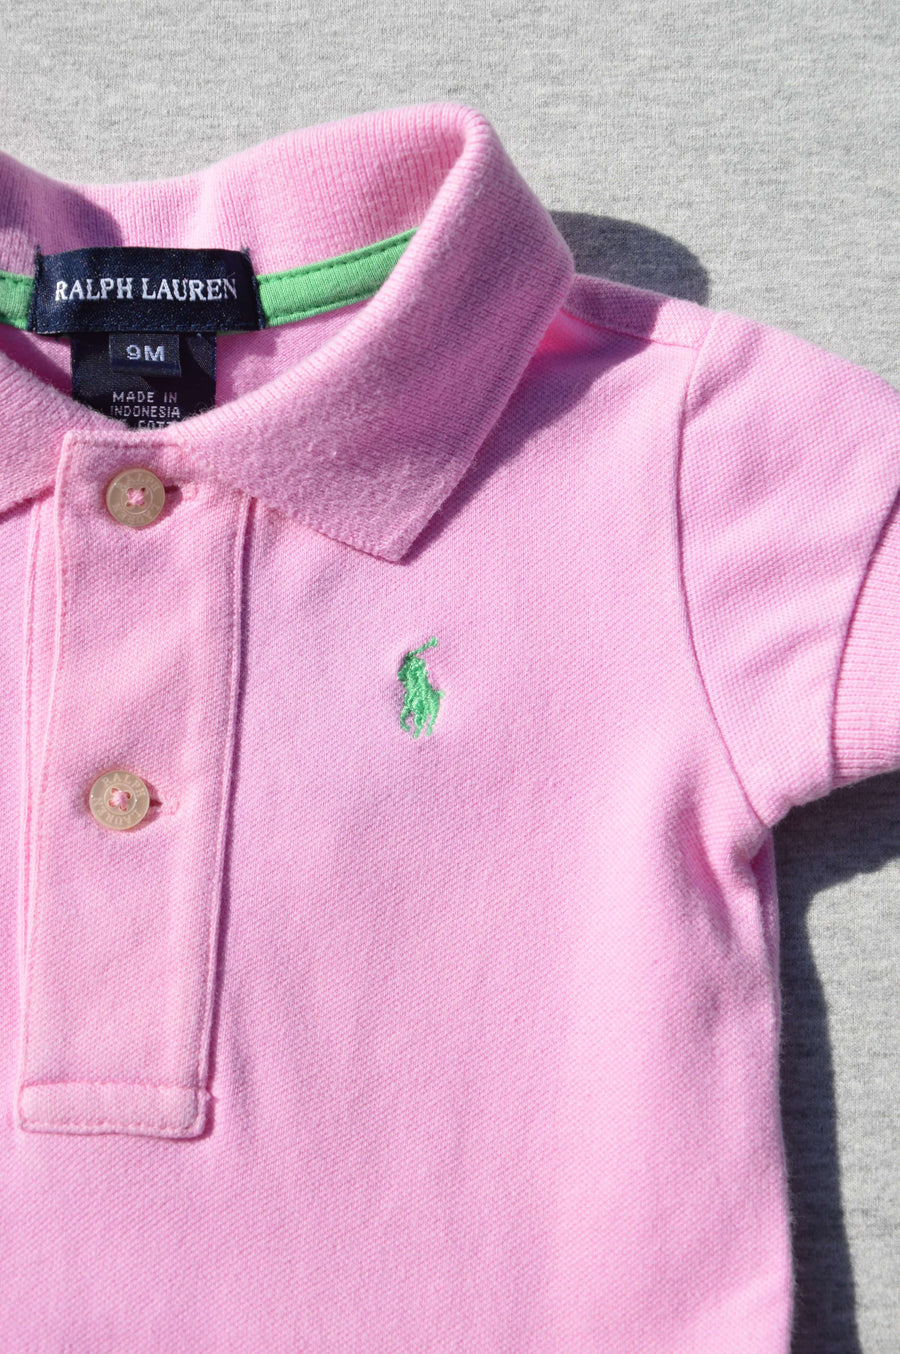 Ralph Lauren - nearly new - pink polo dress, size 9m